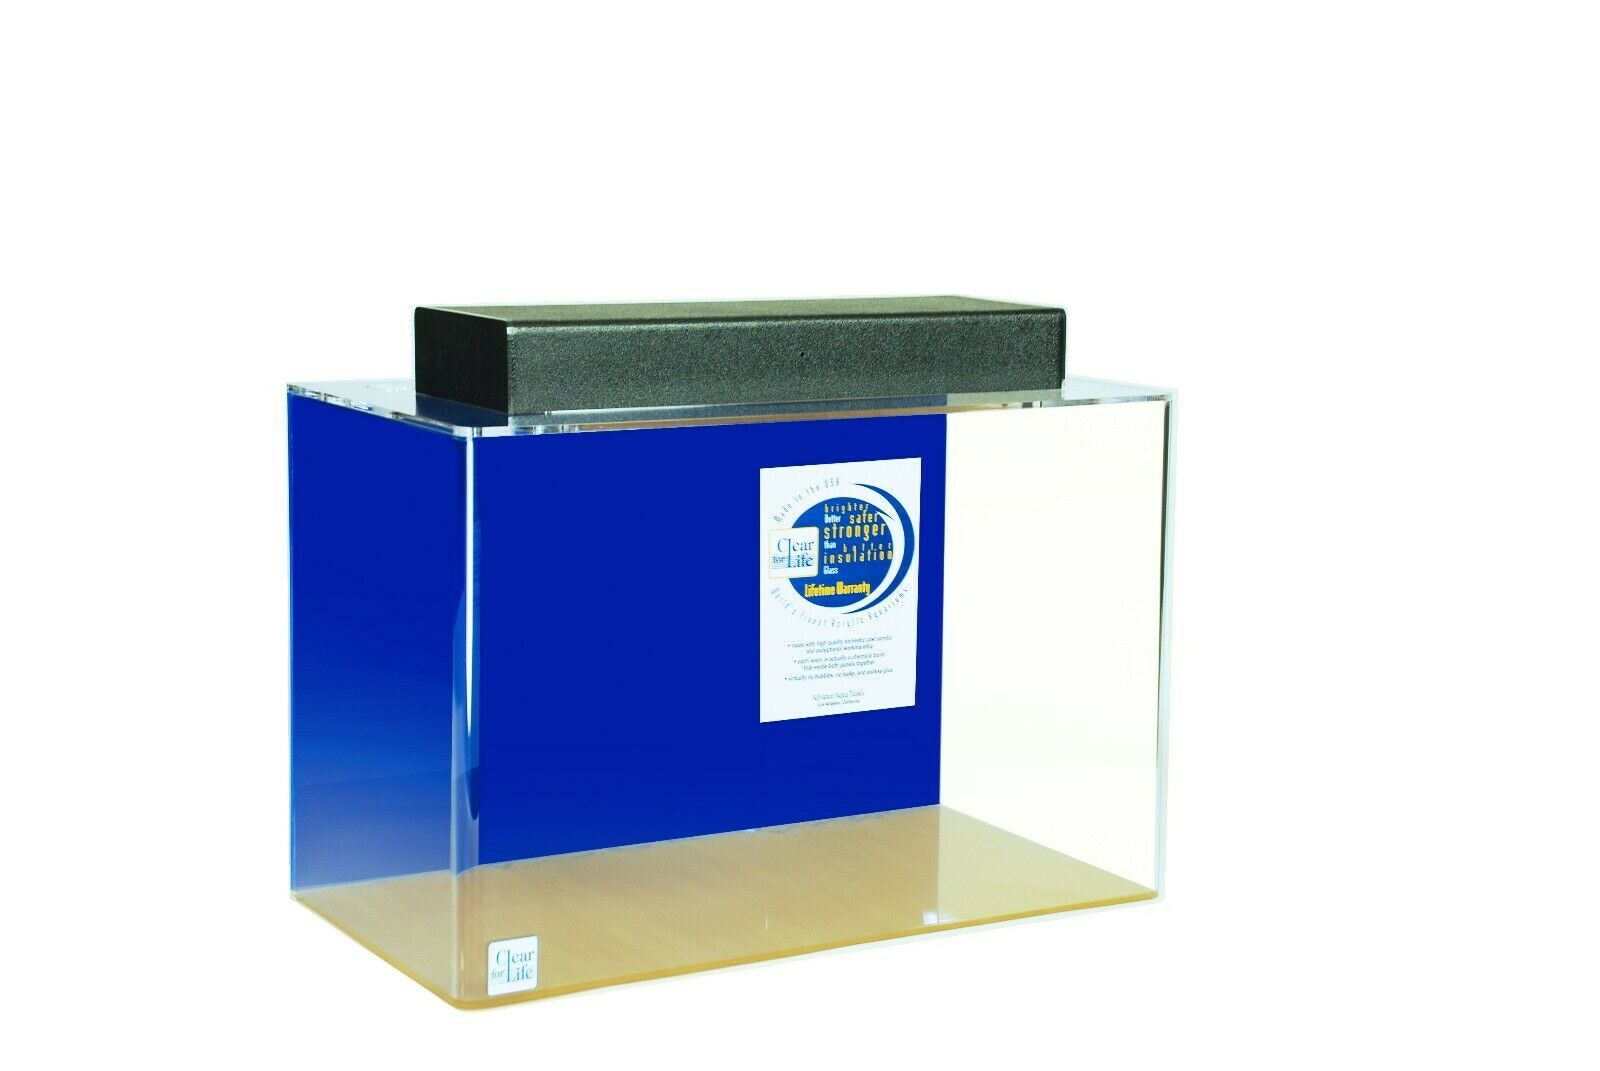 Aquarium - Acrylic - Rectangular - 20 Gal Rectangular Tank 24  X 13  X 16  TALL